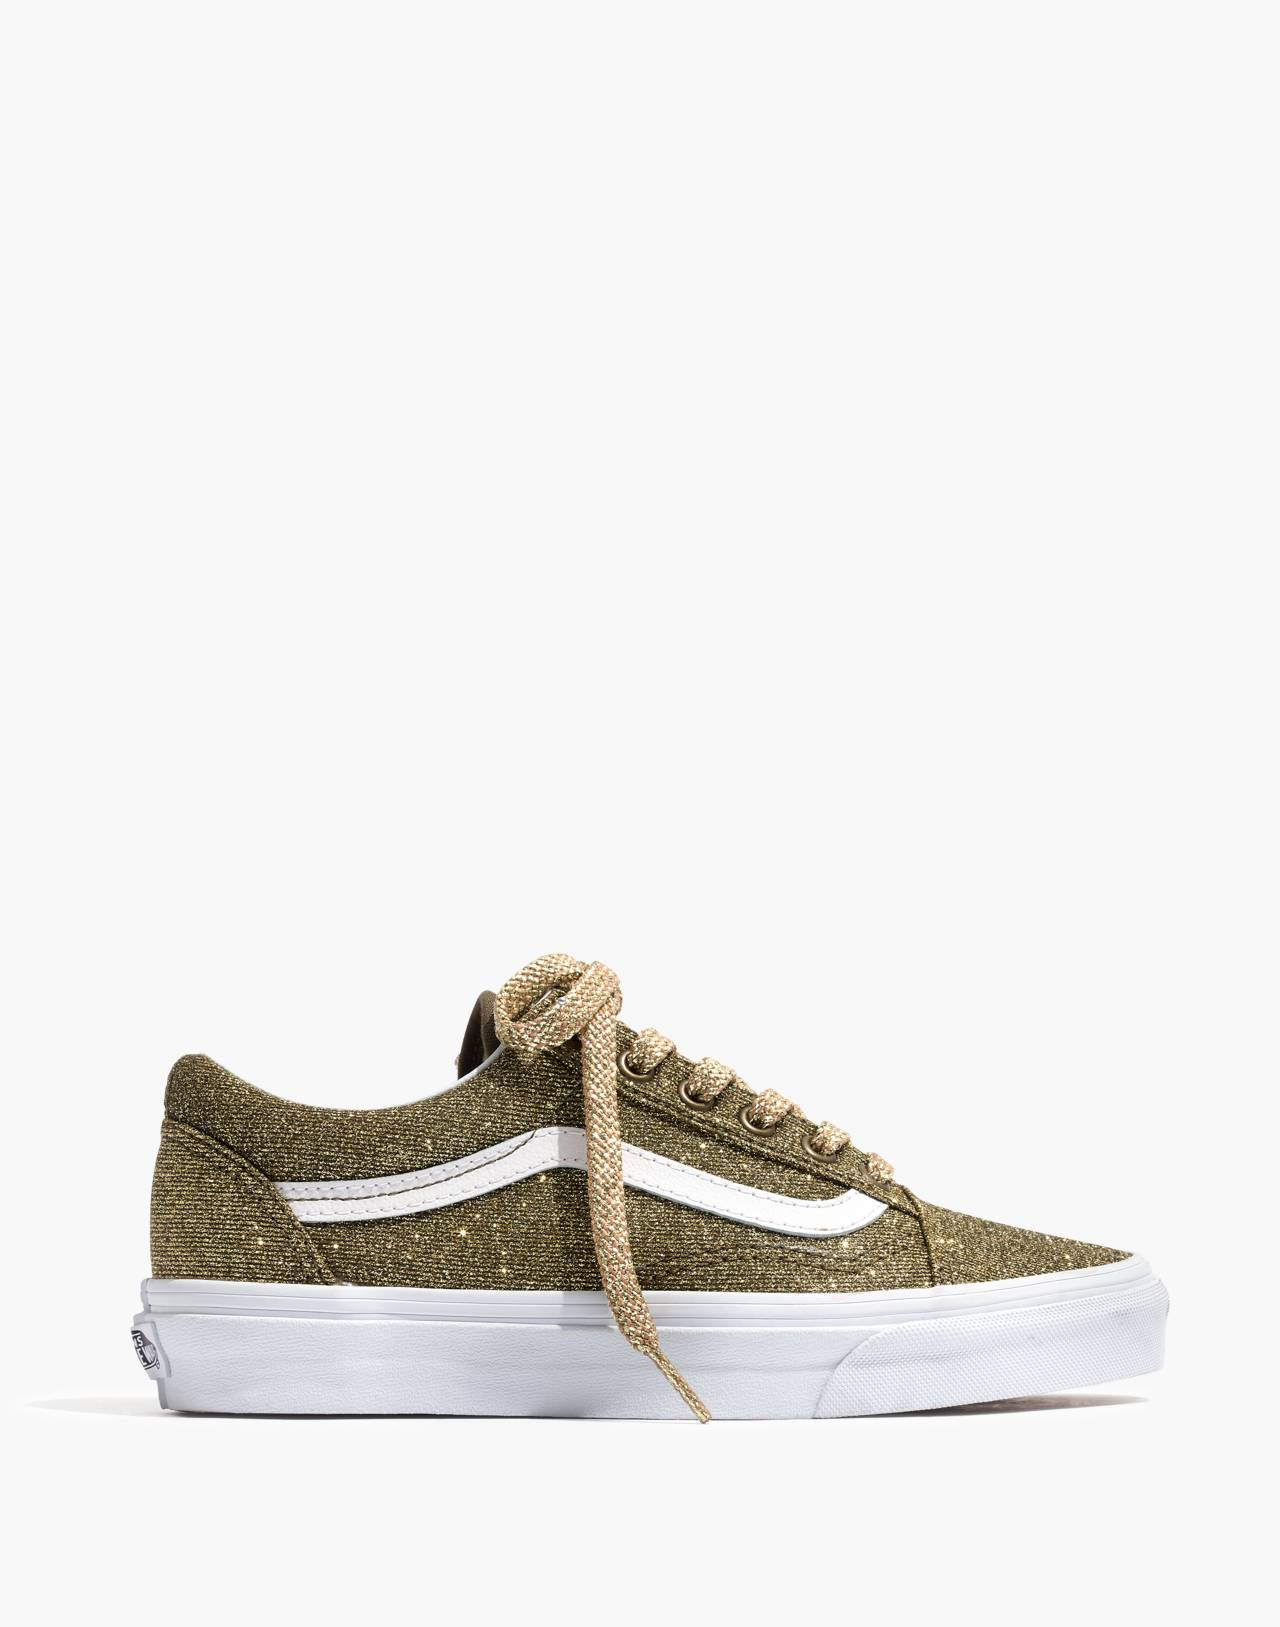 Vans® Unisex Old Skool Lace-Up Sneakers in Gold Glitter in gold true white image 3